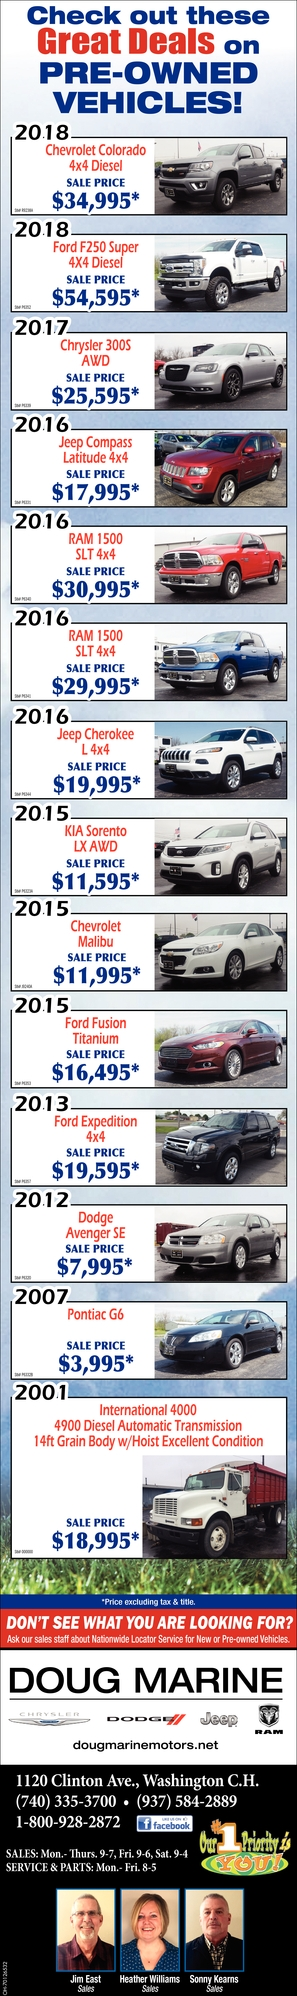 Check out these Great Deals on Pre-Owned Vehicles!